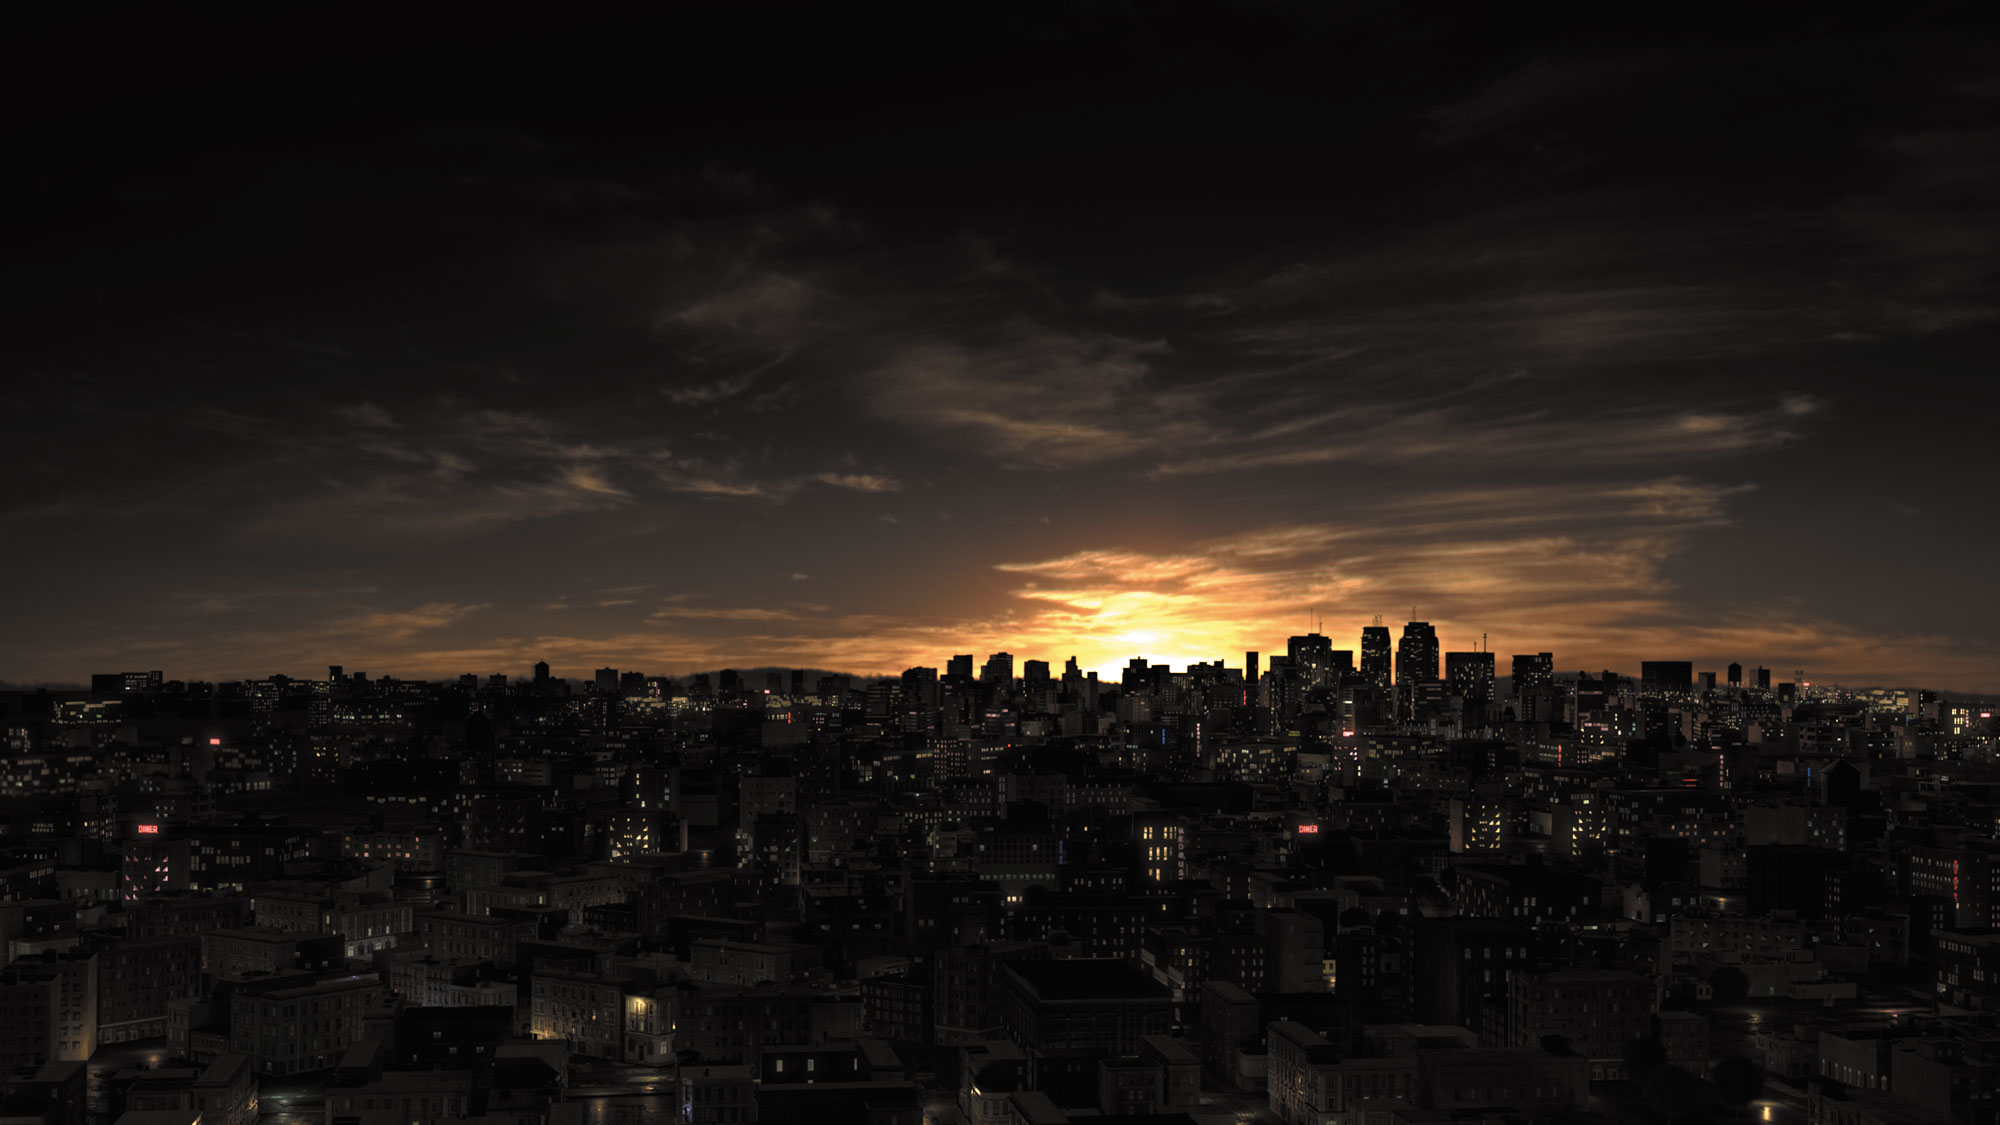 racoon city from RE2